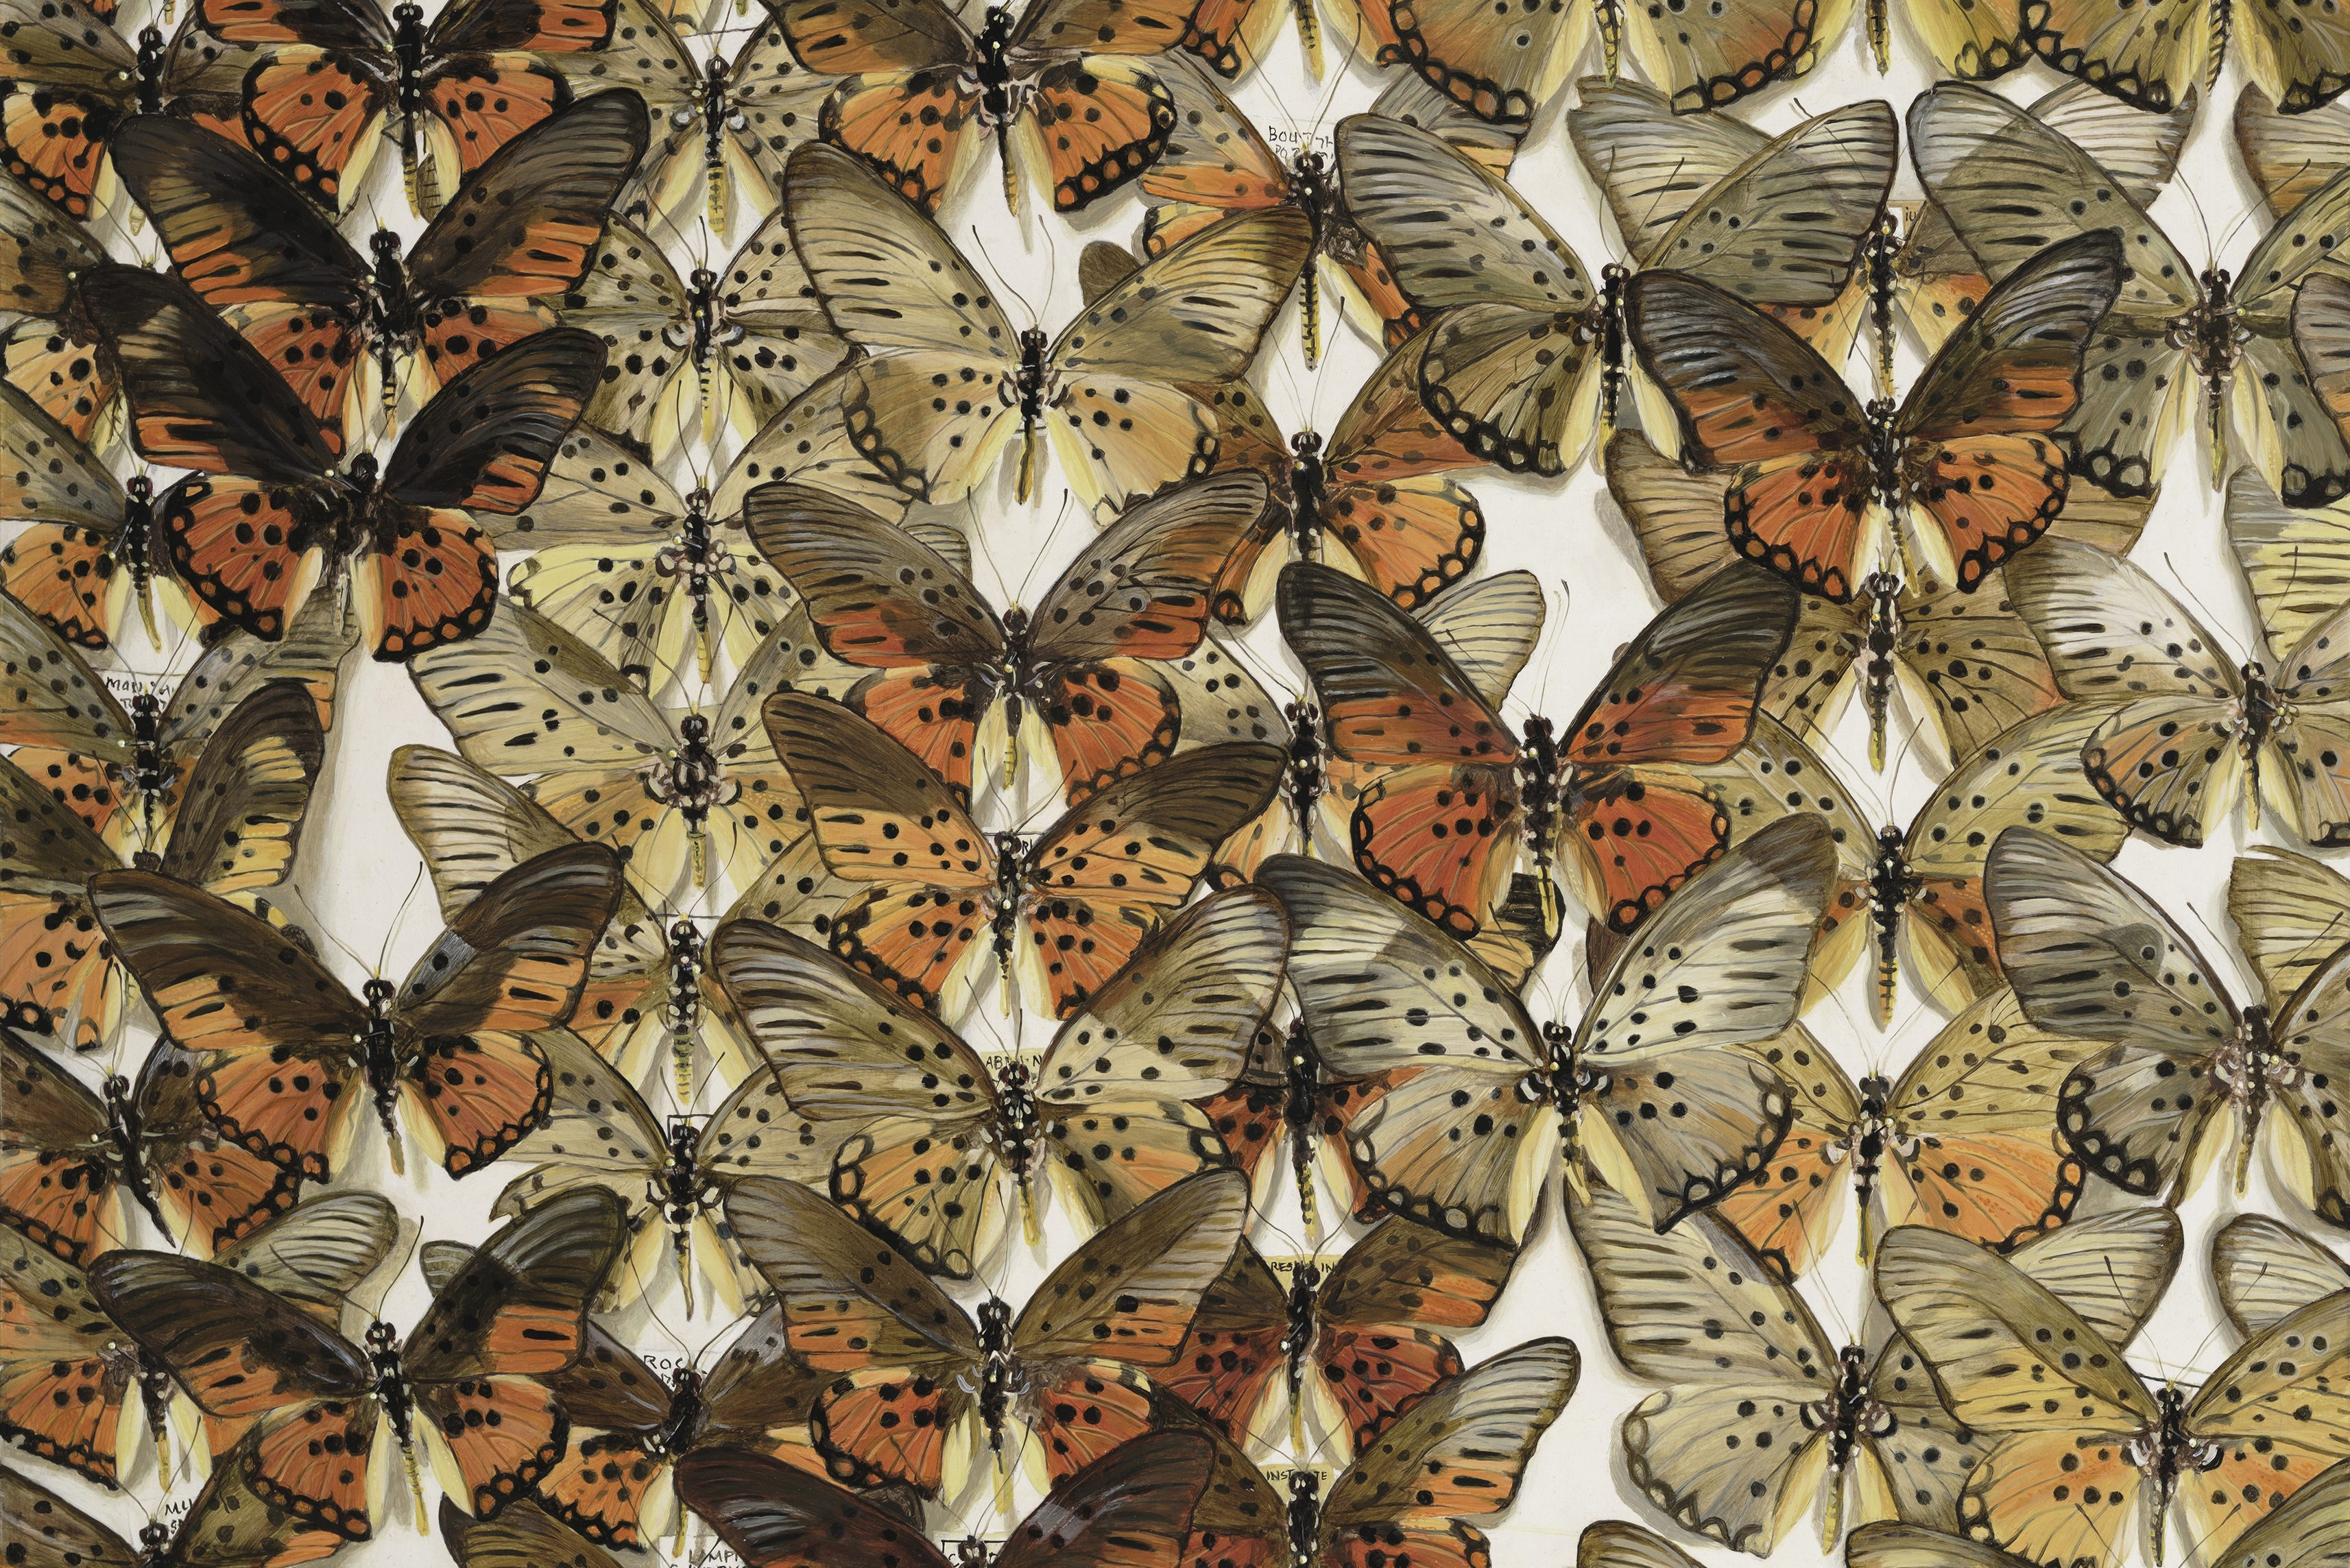 Crowded painting of butterflies, side by side, overlapping, still. One feels as if they are standing in a bug museum, standing very near a wall of fossilized butterflies.